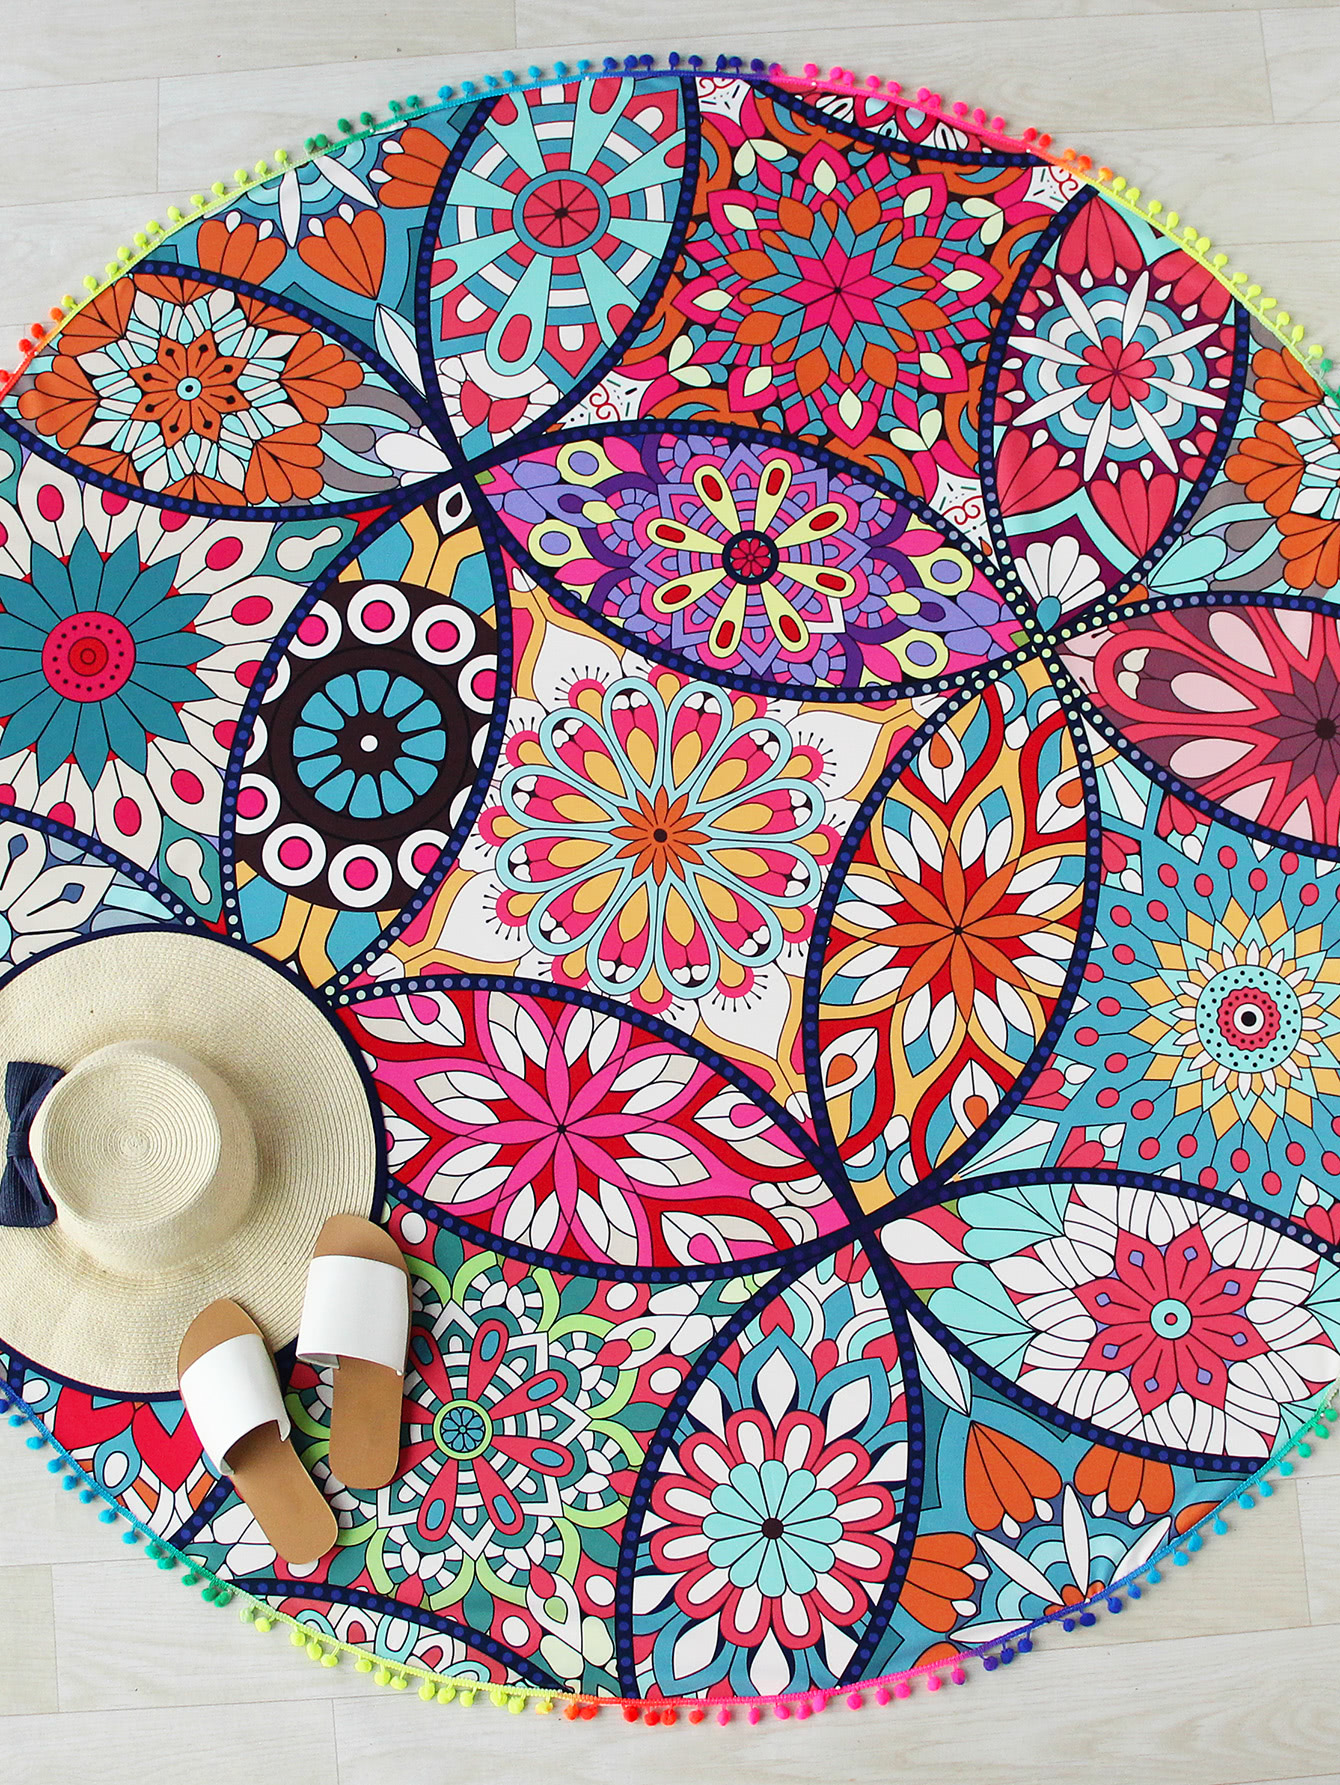 48ad4d6bc0 Shop Calico Print Pom Pom Trim Round Beach Blanket online. SheIn offers  Calico Print Pom Pom Trim Round Beach Blanket & more to fit your  fashionable needs.